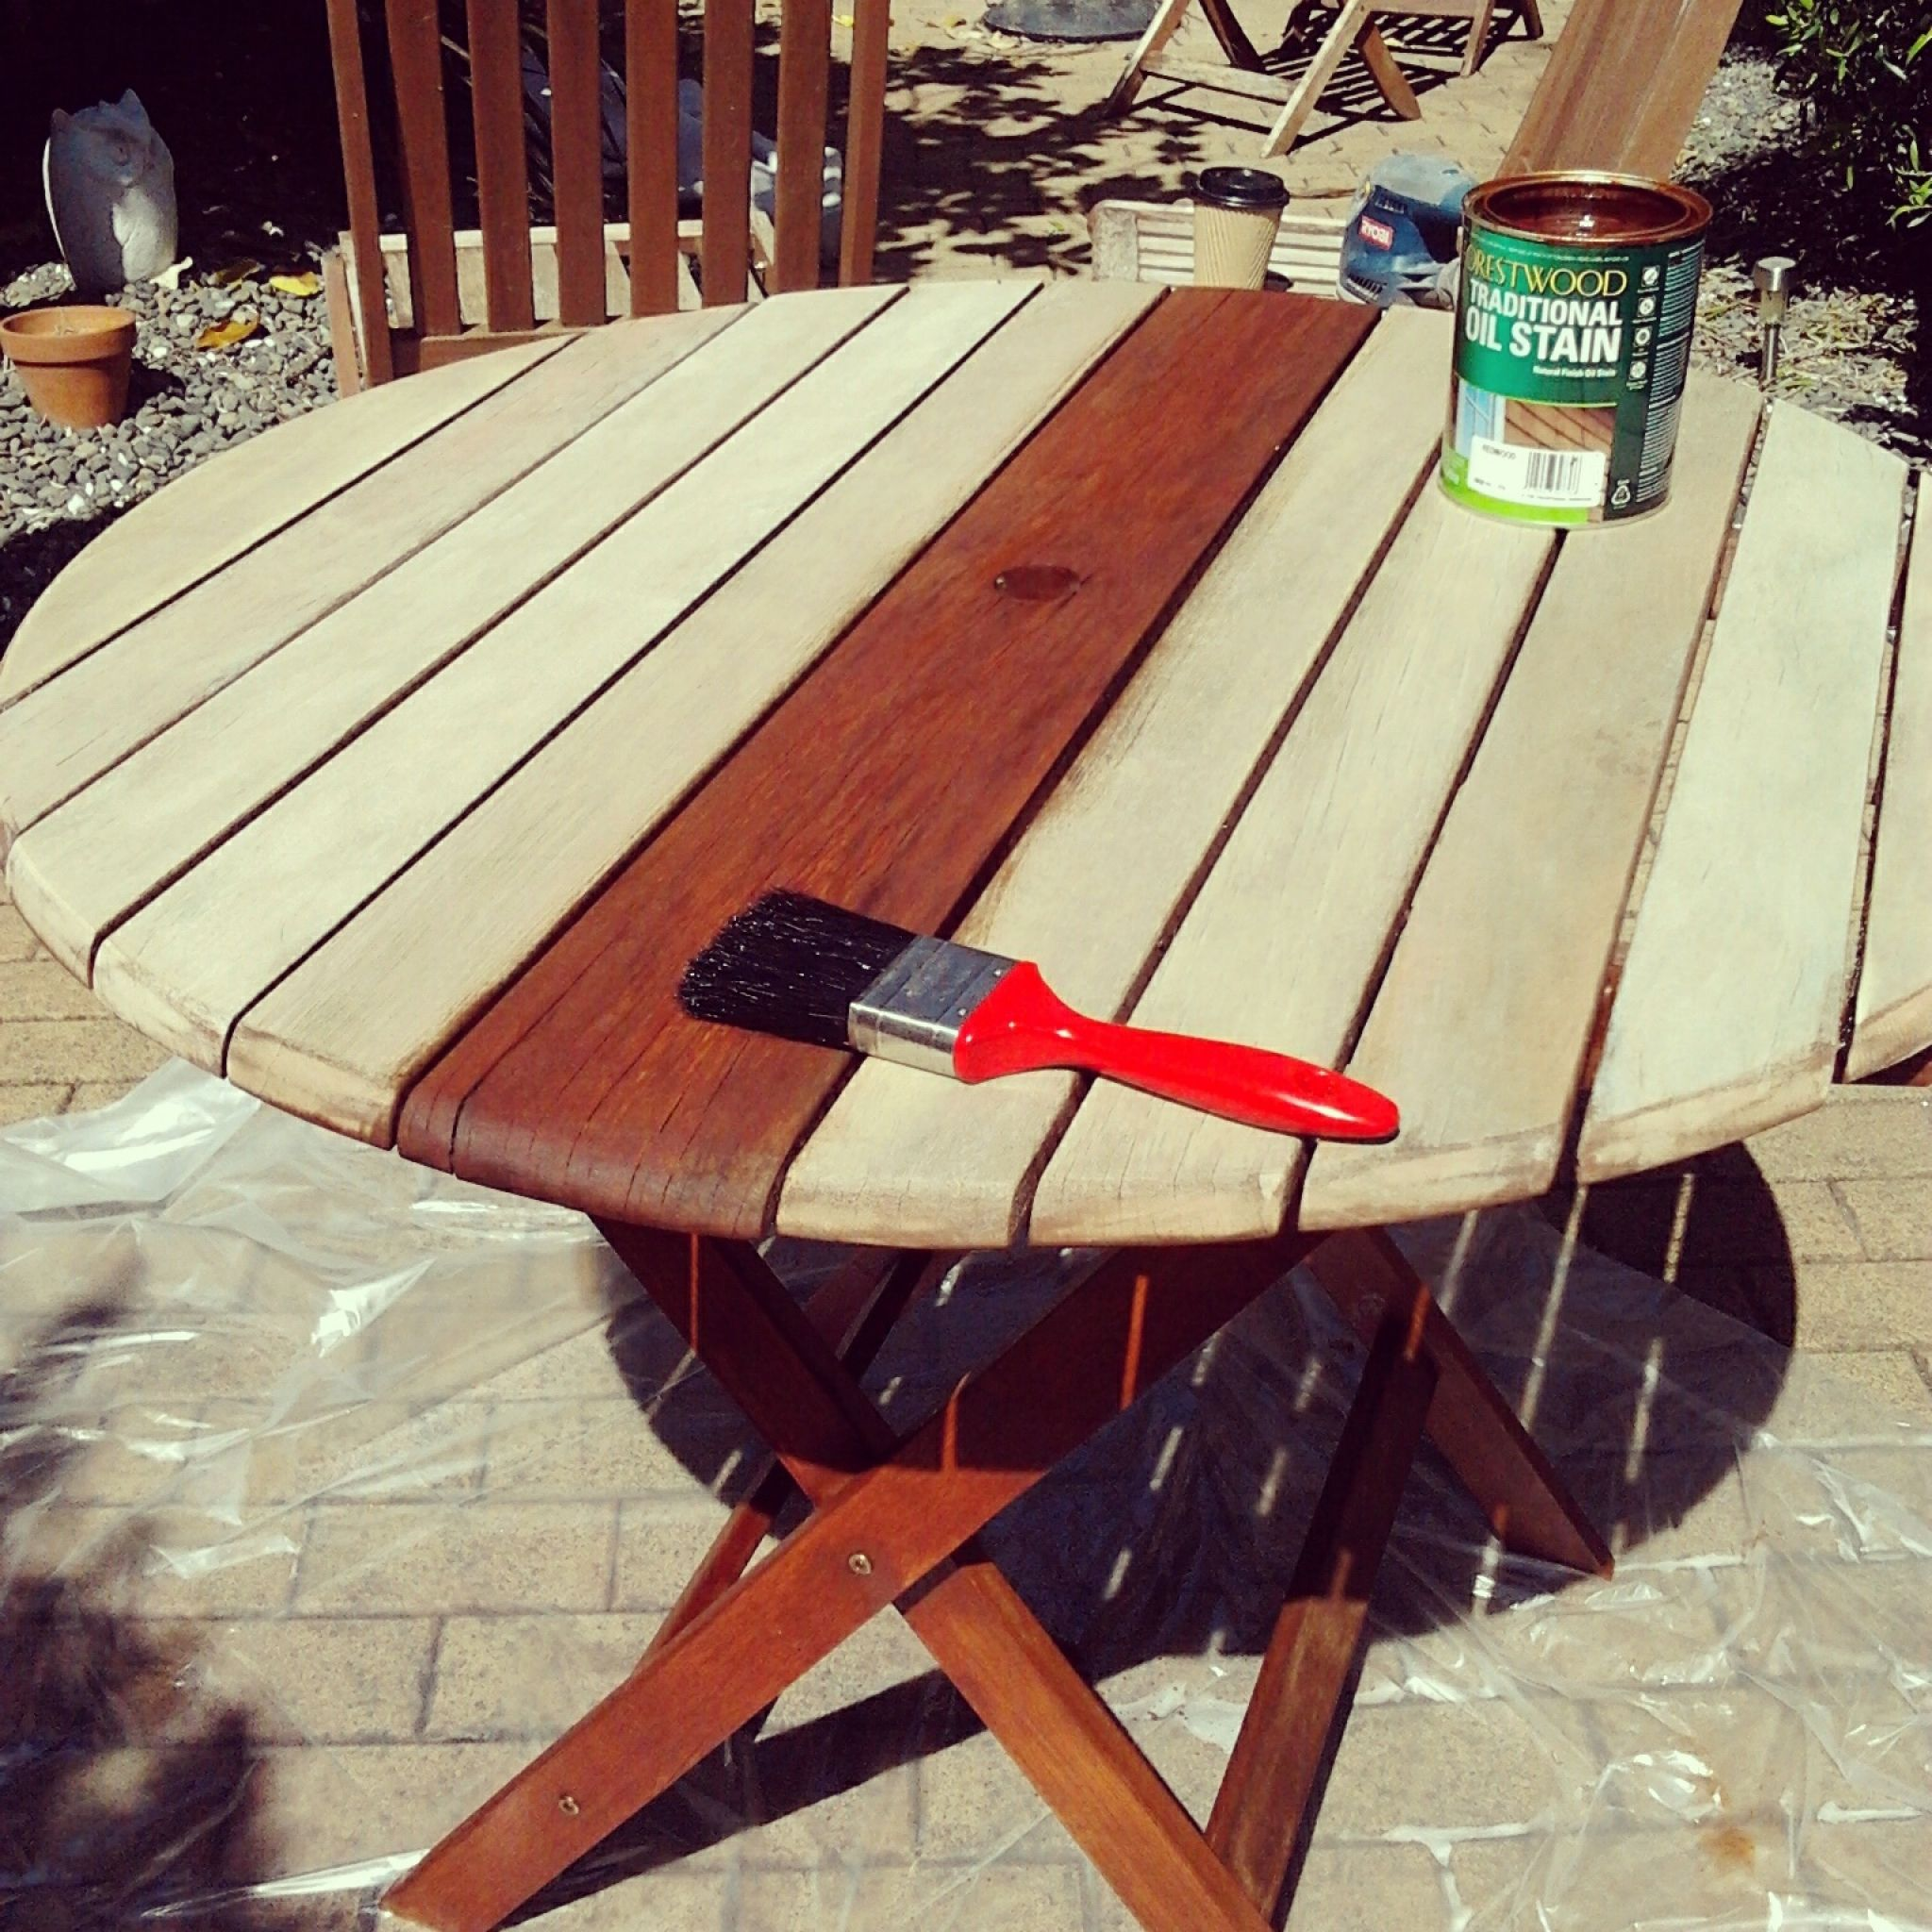 Outdoor Furniture Wood Stain Interior Paint Color Schemes Check More At Http Www Mtbasics C Outdoor Wood Furniture House Paint Interior Furniture